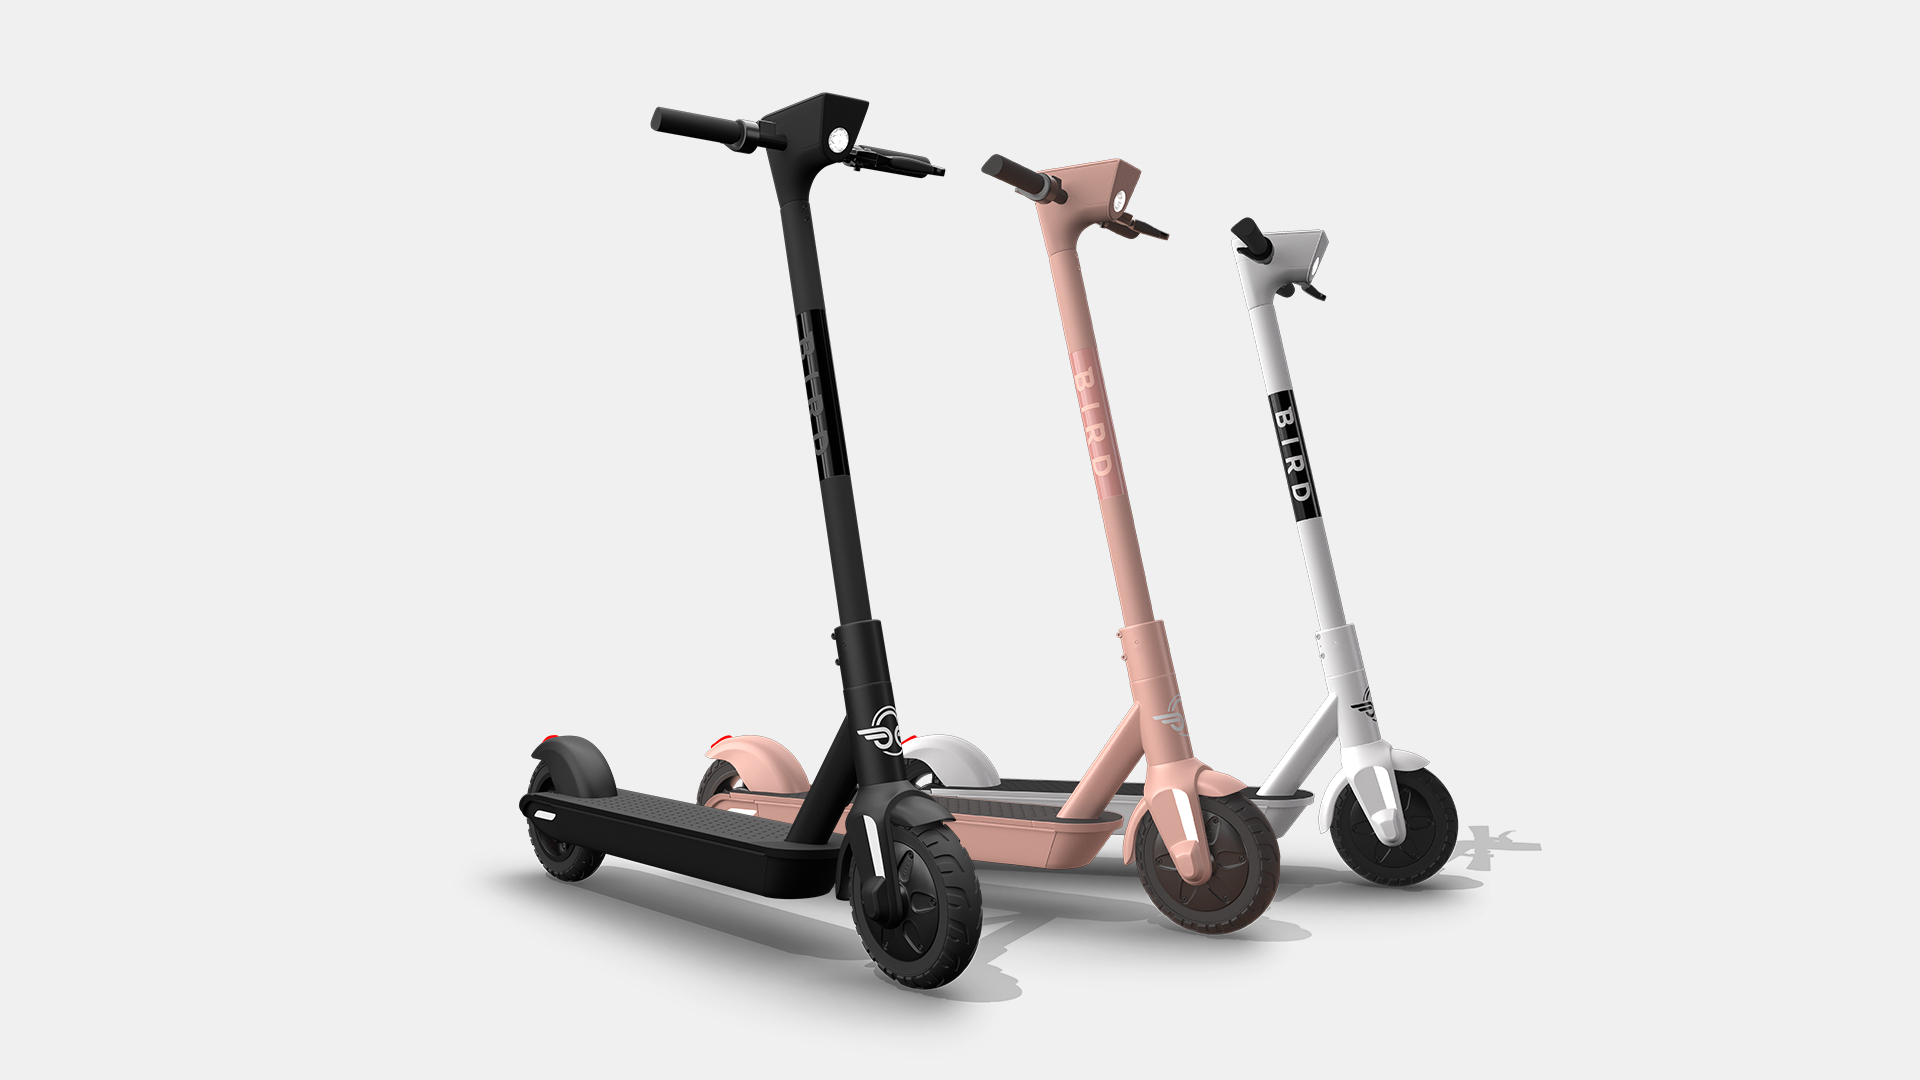 Bird has a new electric scooter: it's durable, comes in